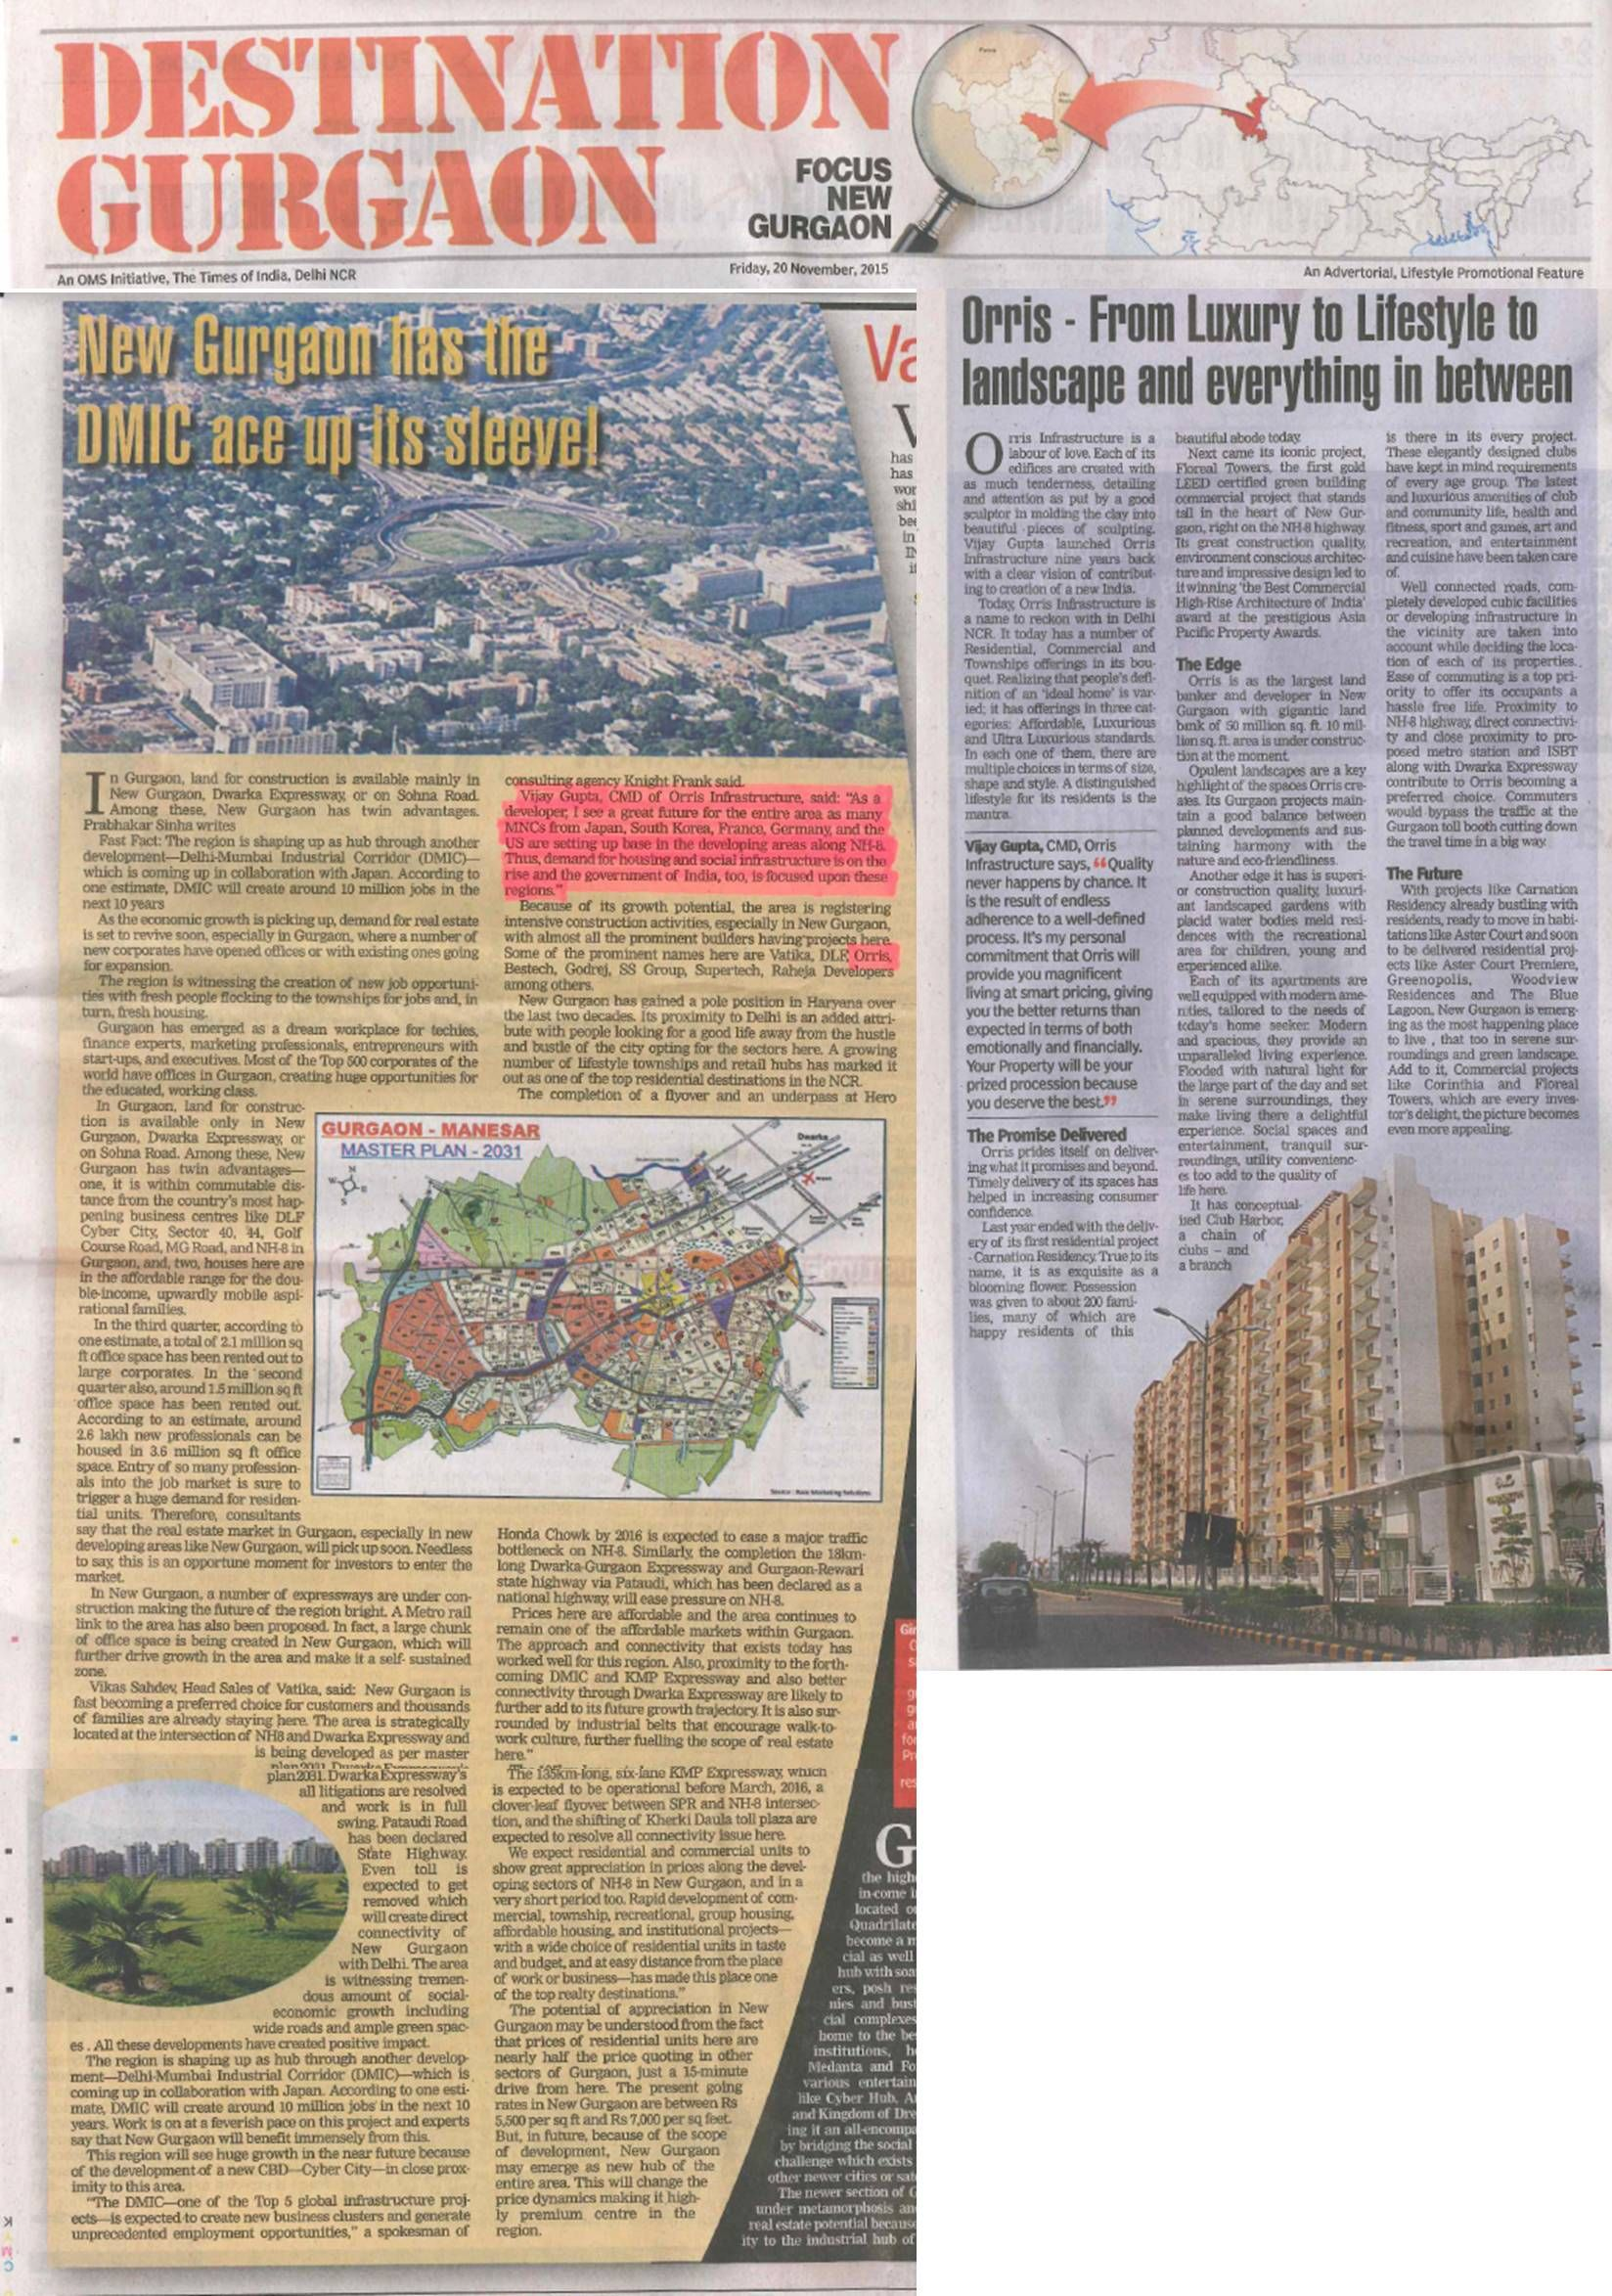 Properties in Gurgaon at #OrrisInfrastructure - From Luxury to Lifestyle to Landscape & everything in between.